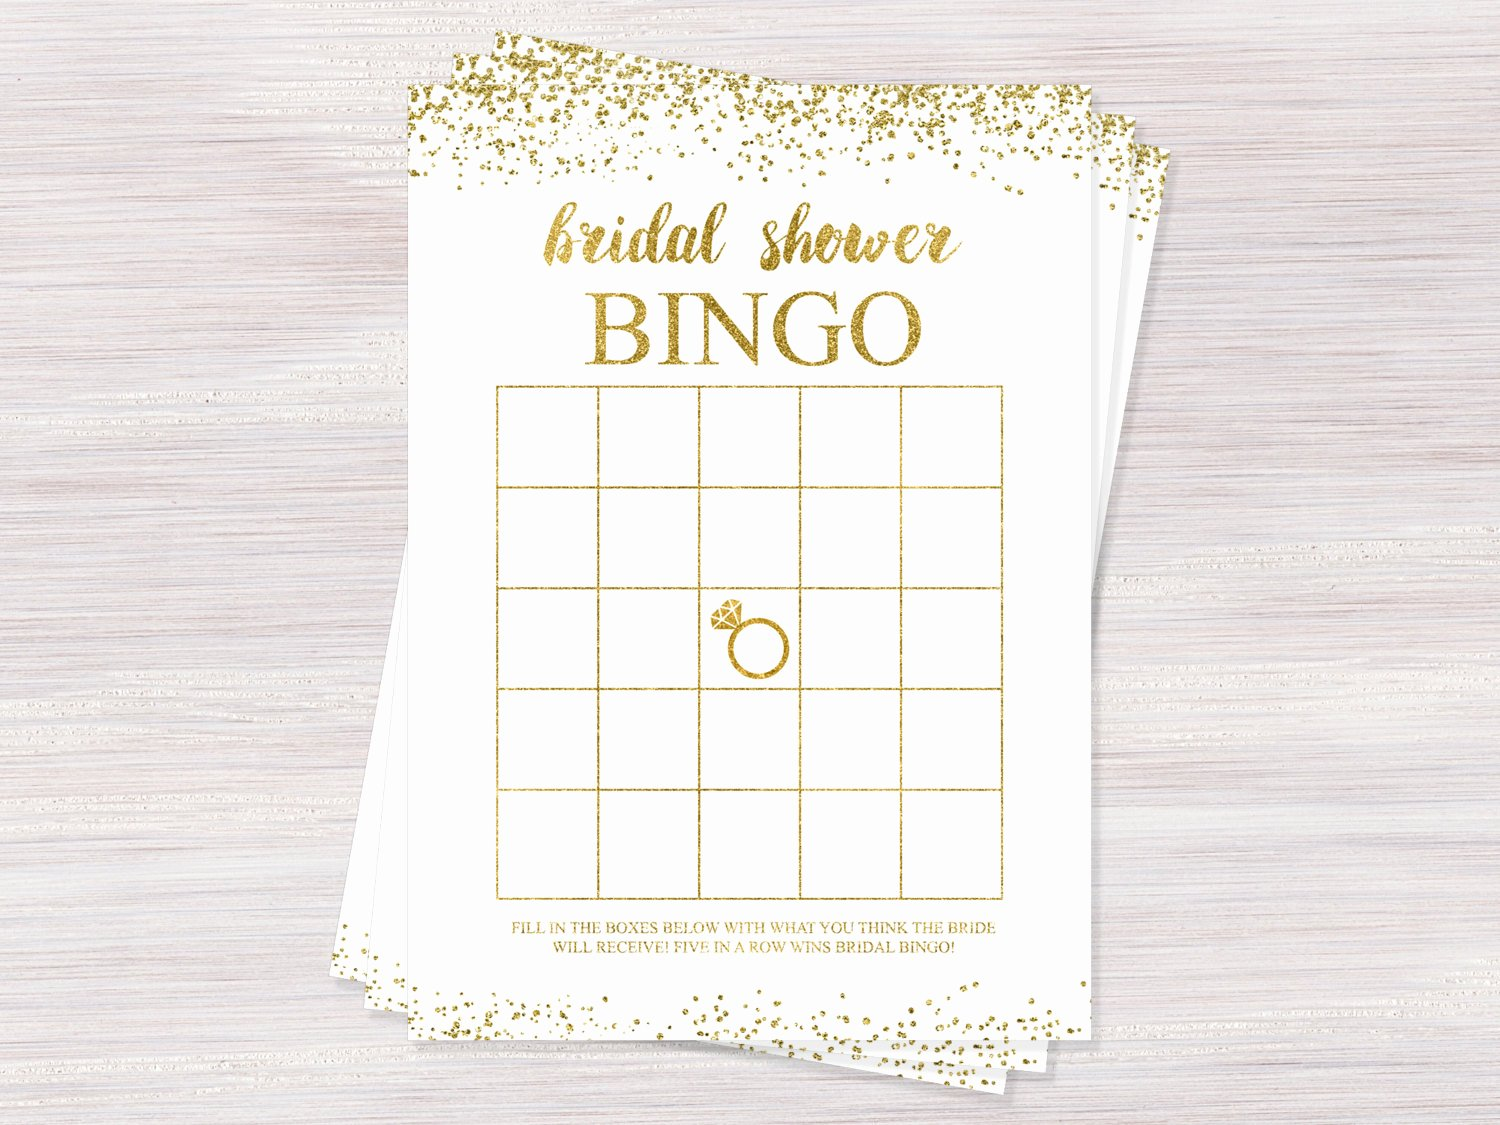 Bridal Shower Bingo Template Free Luxury Bridal Bingo Bridal Shower Games Bingo Cards Printable